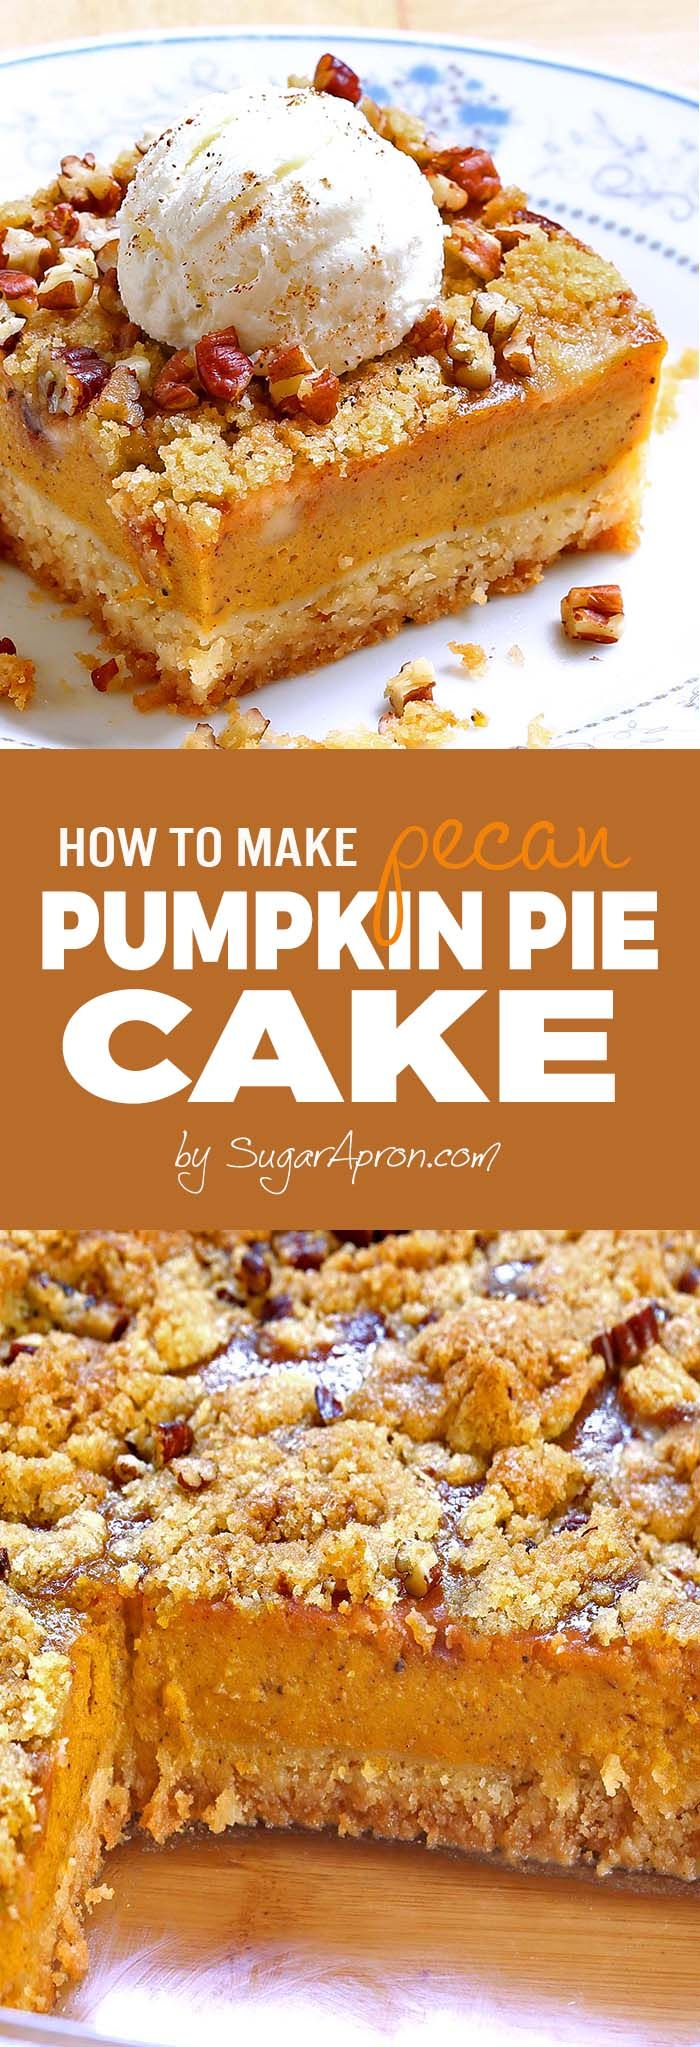 Pumpkin Pie Cake - Sugar Apron